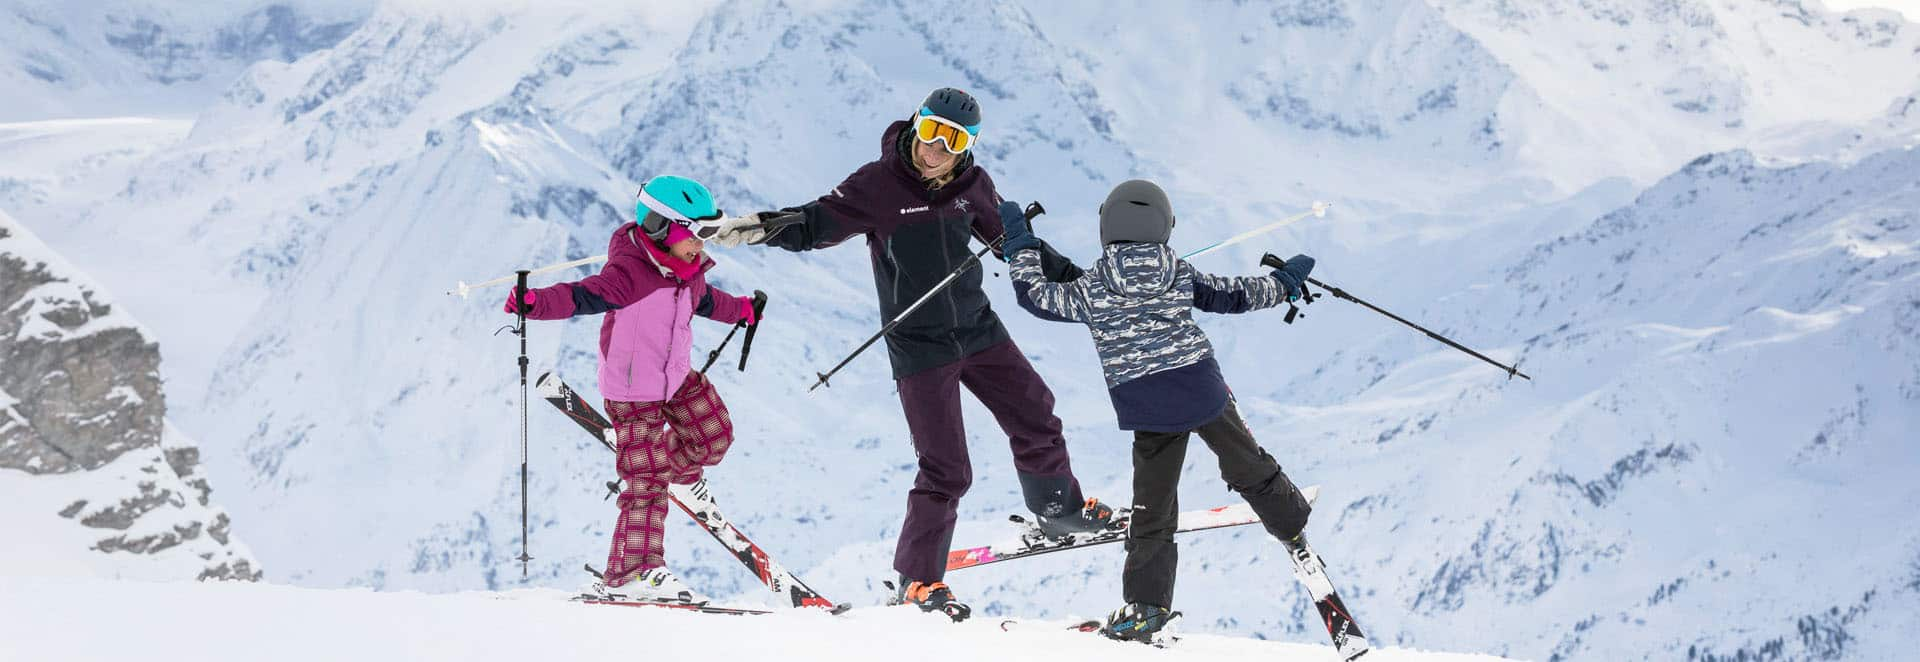 Private ski lessons in Verbier - Georgia and kids